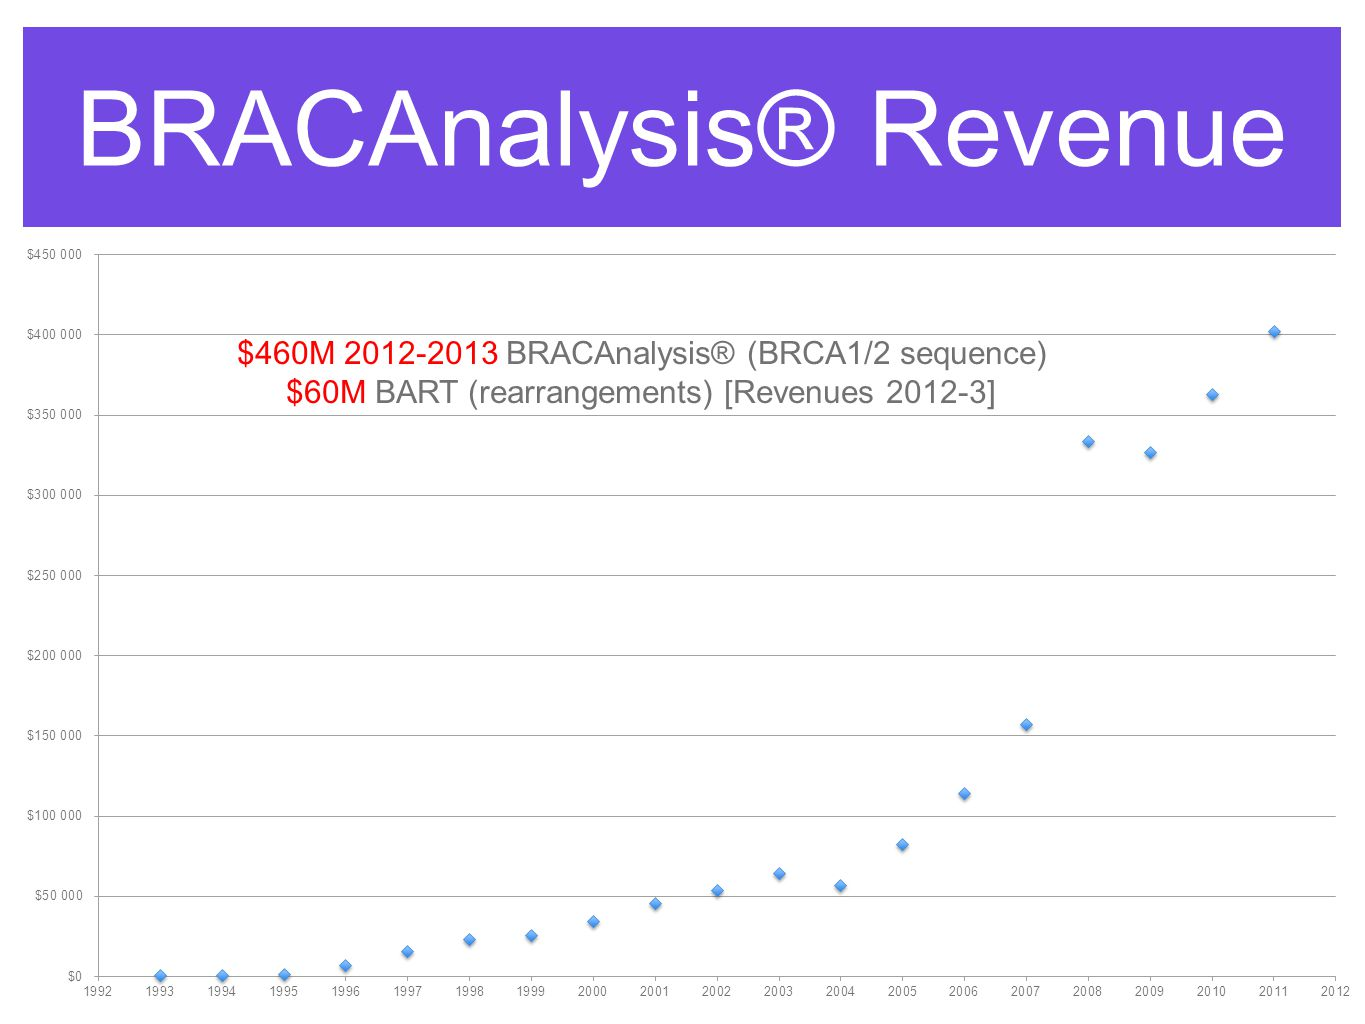 BRACAnalysis® Revenue $460M 2012-2013 BRACAnalysis® (BRCA1/2 sequence) $60M BART (rearrangements) [Revenues 2012-3]